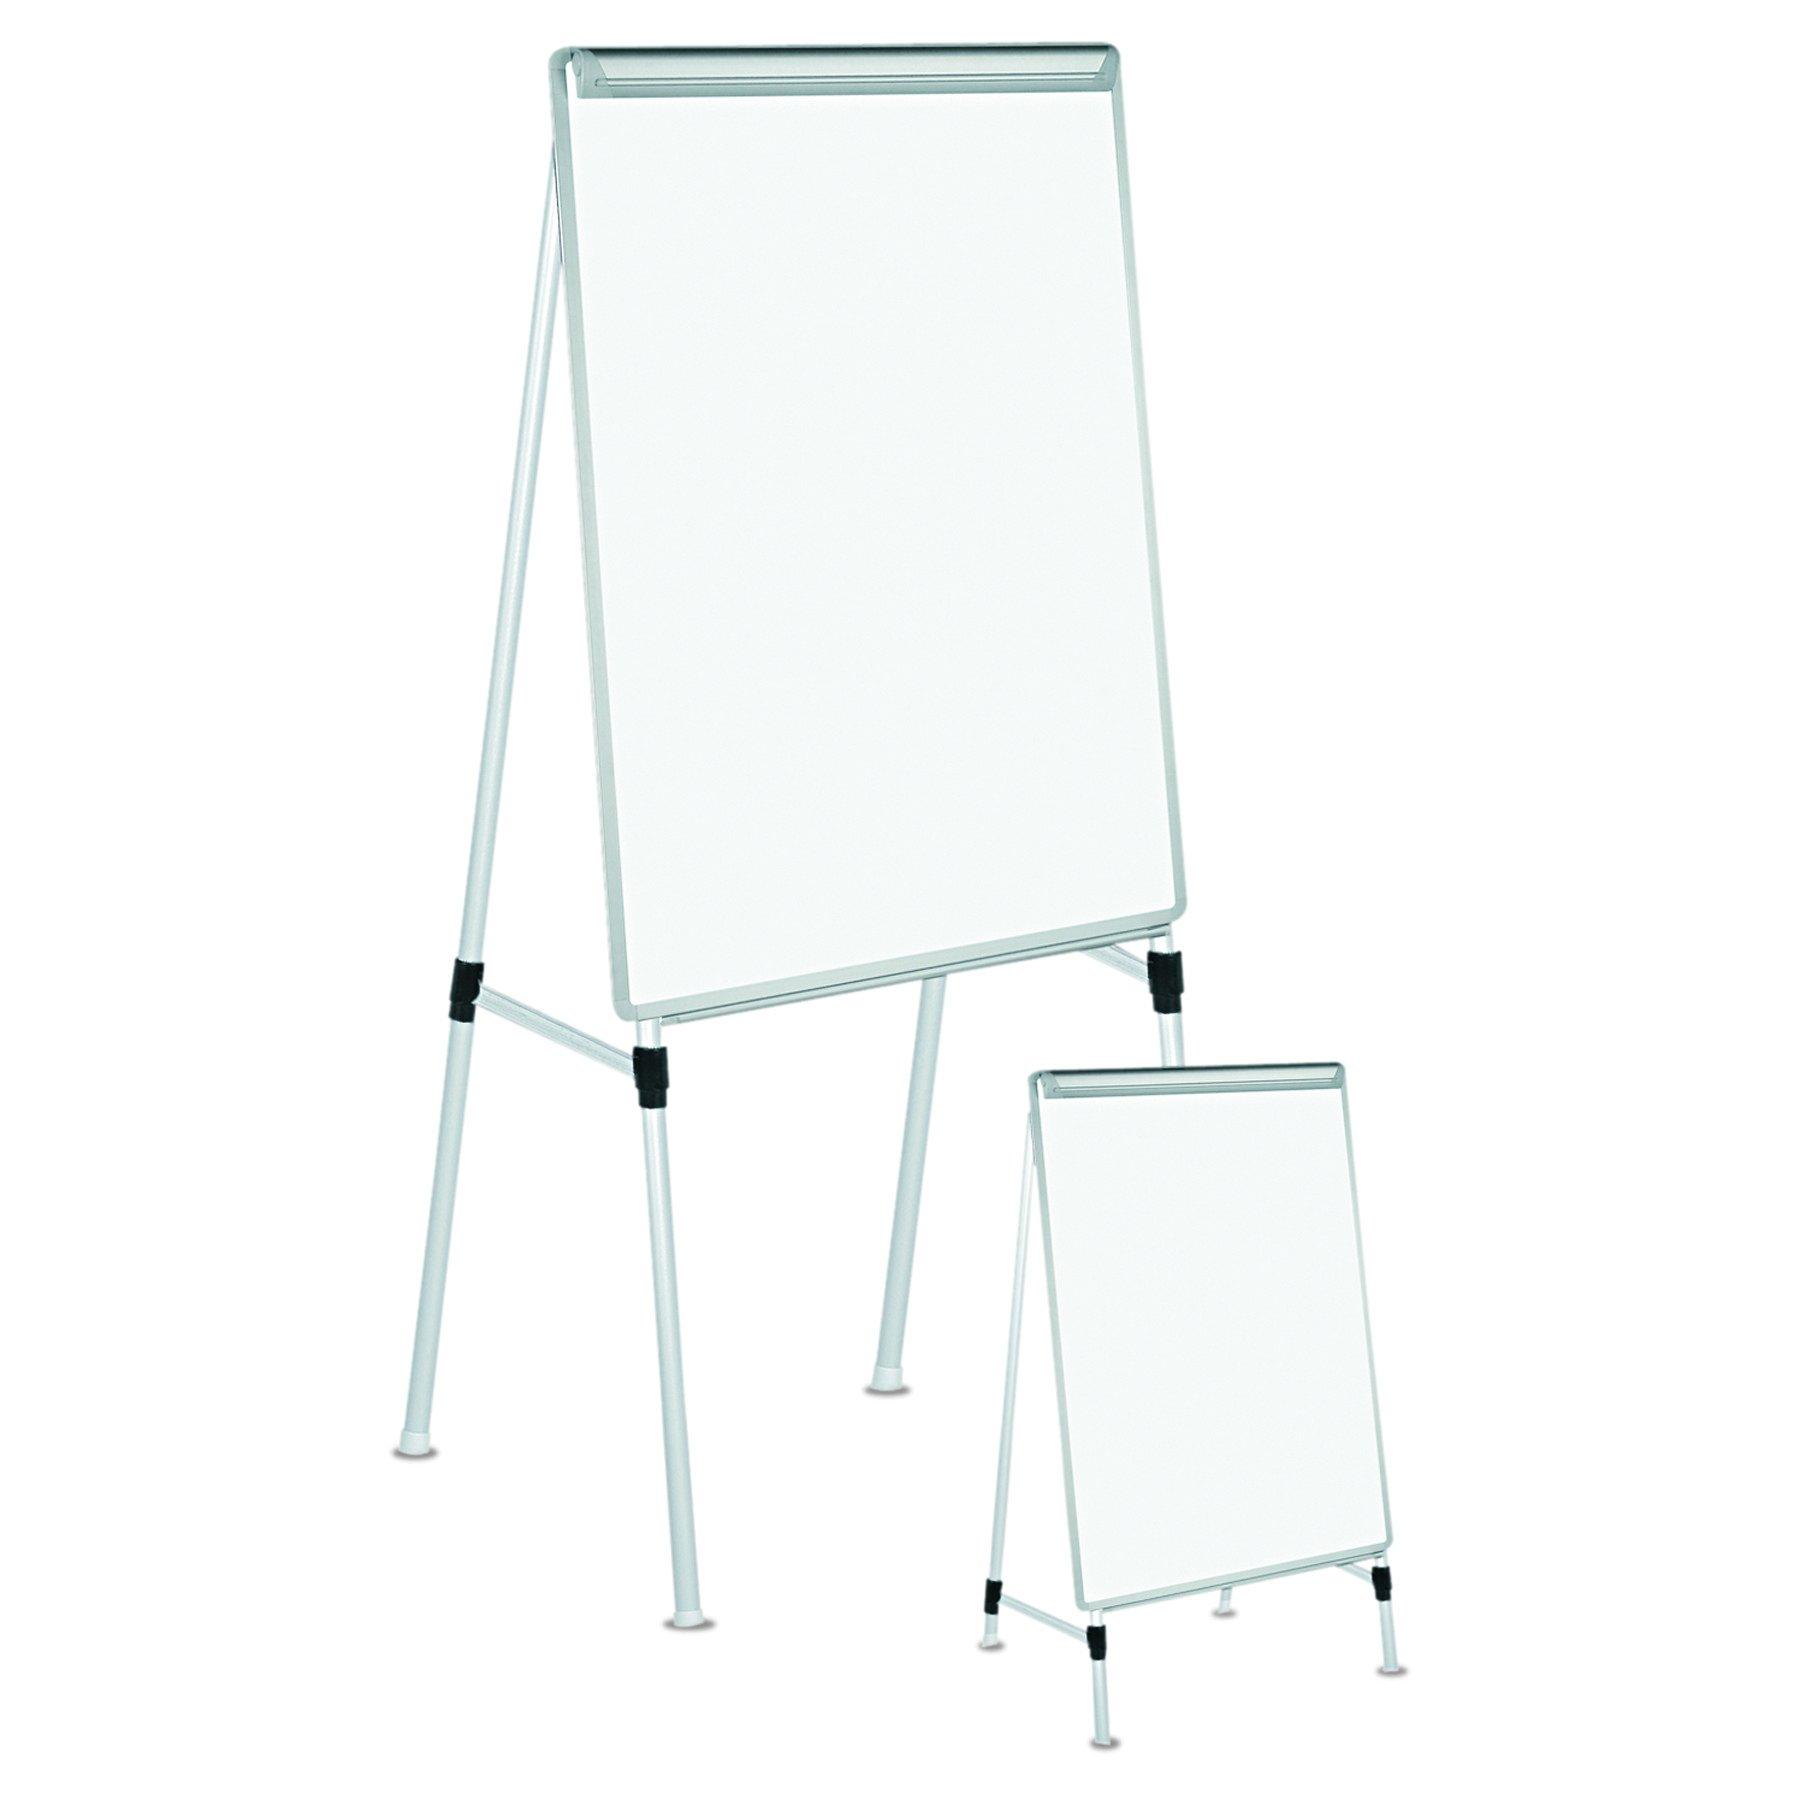 Universal 43033 Dry Erase Easel Board, Easel Height: 42'' to 67'', Board: 29'' x 41'', White/Silver